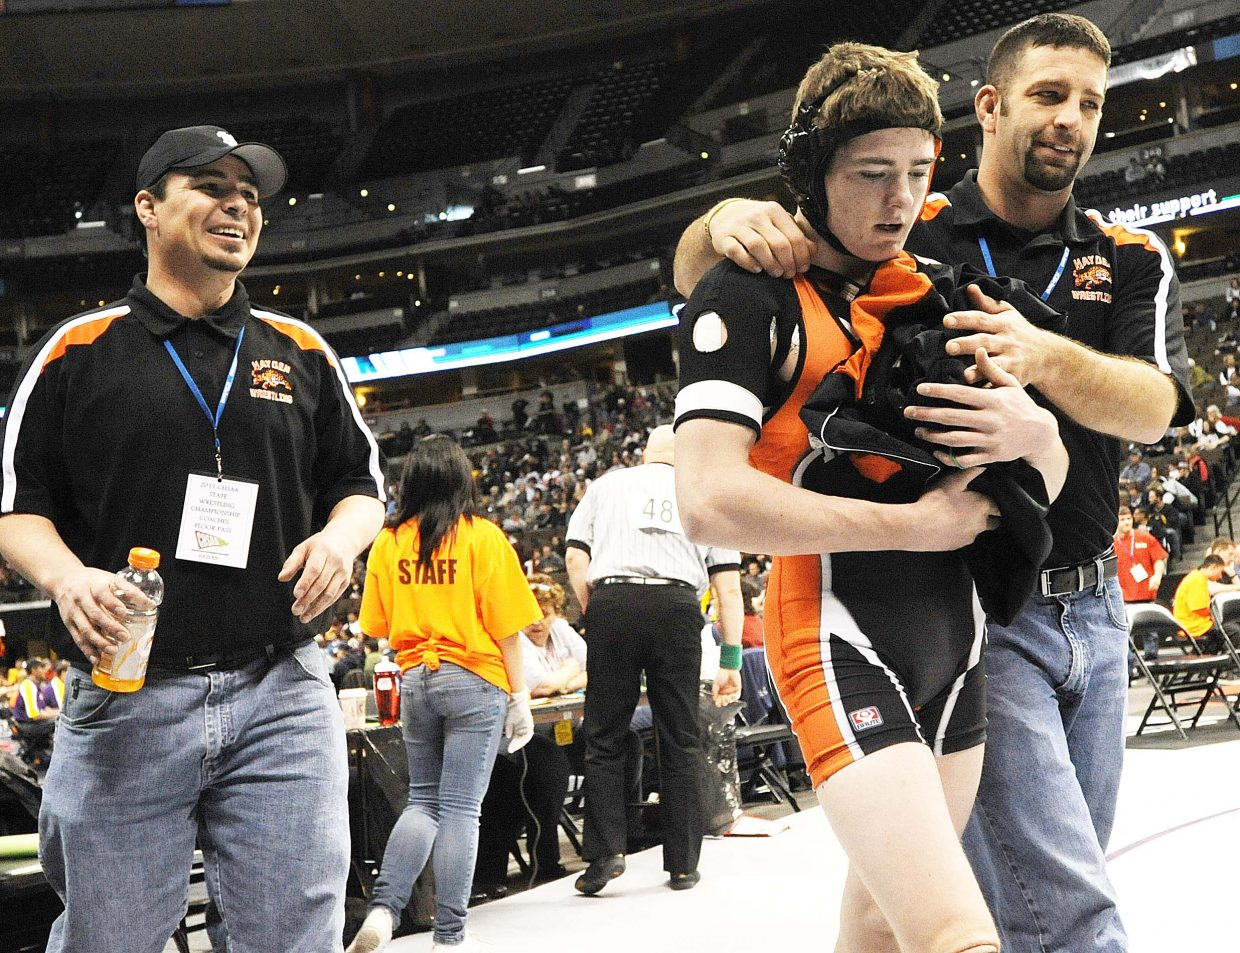 Hayden coach Ty Camilletti leads junior Chad Terry off the mat Friday after Terry won in the quaterfinal round of the state wrestling tournament in Denver.